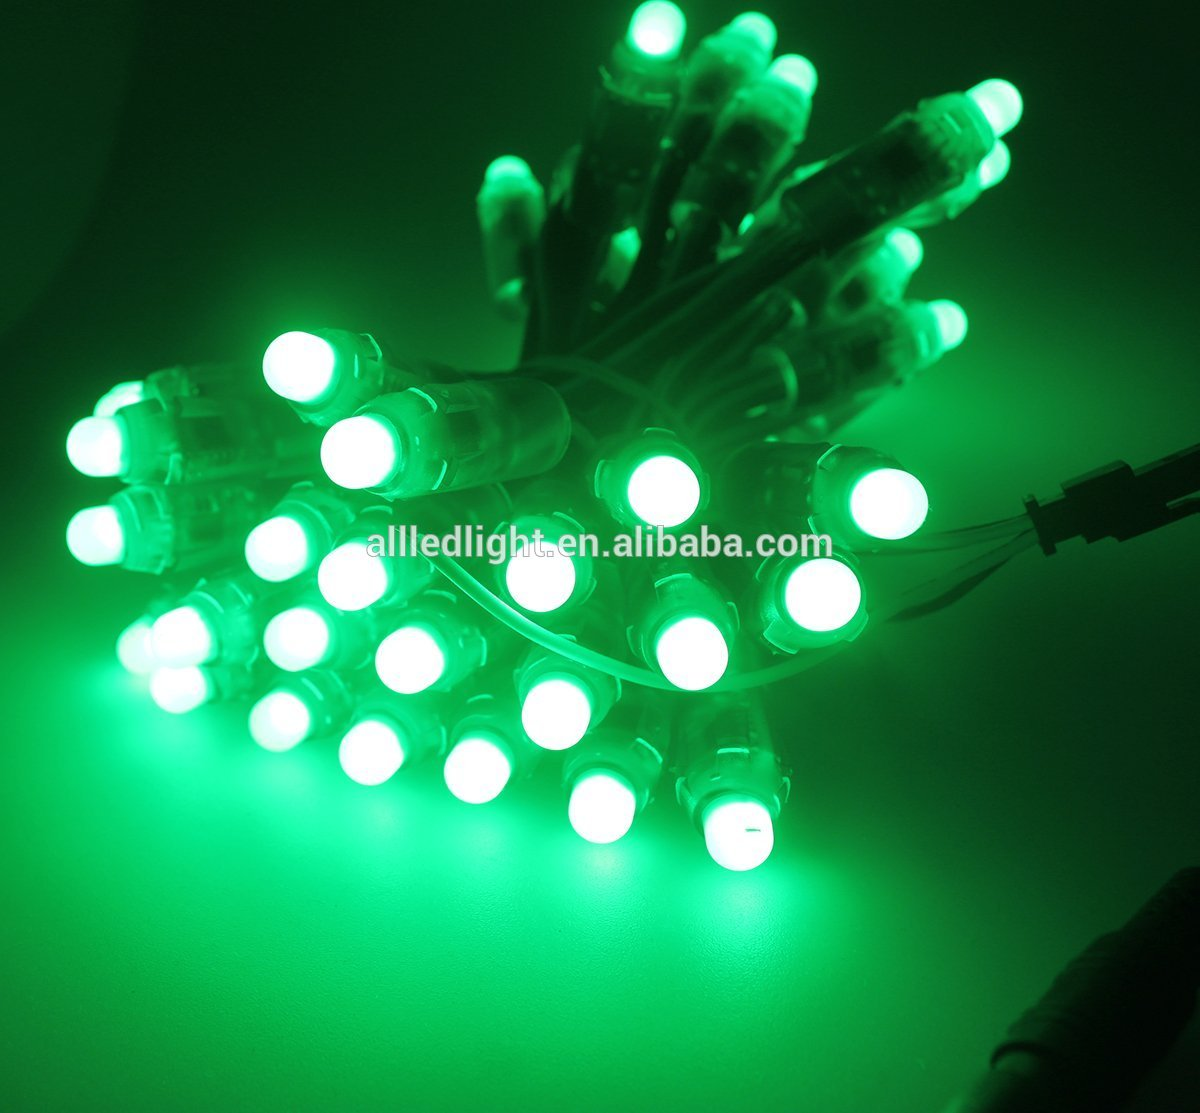 5V full color 12mm WS2811 1903 SM16703  WS2811 led pixel string light digital module 50LEDs/string Round Shape Waterproof IP68